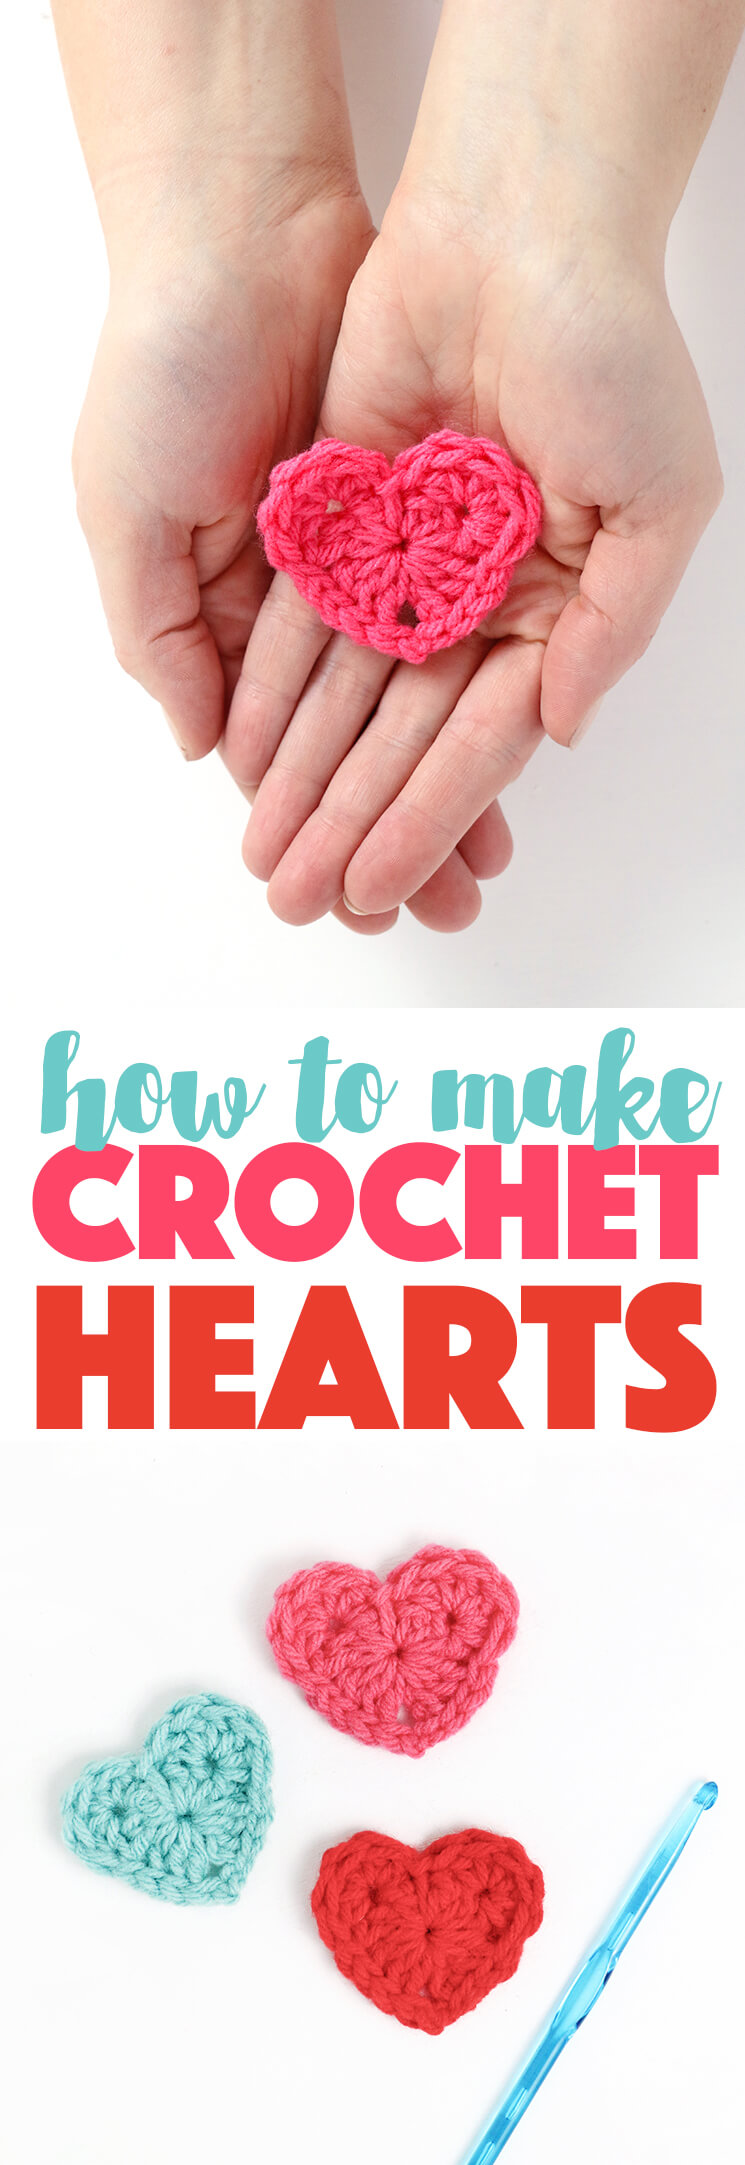 How to crochet a heart free crochet heart pattern persia lou how to crochet hearts simple crochet heart free pattern makes the cutest little hearts bankloansurffo Images